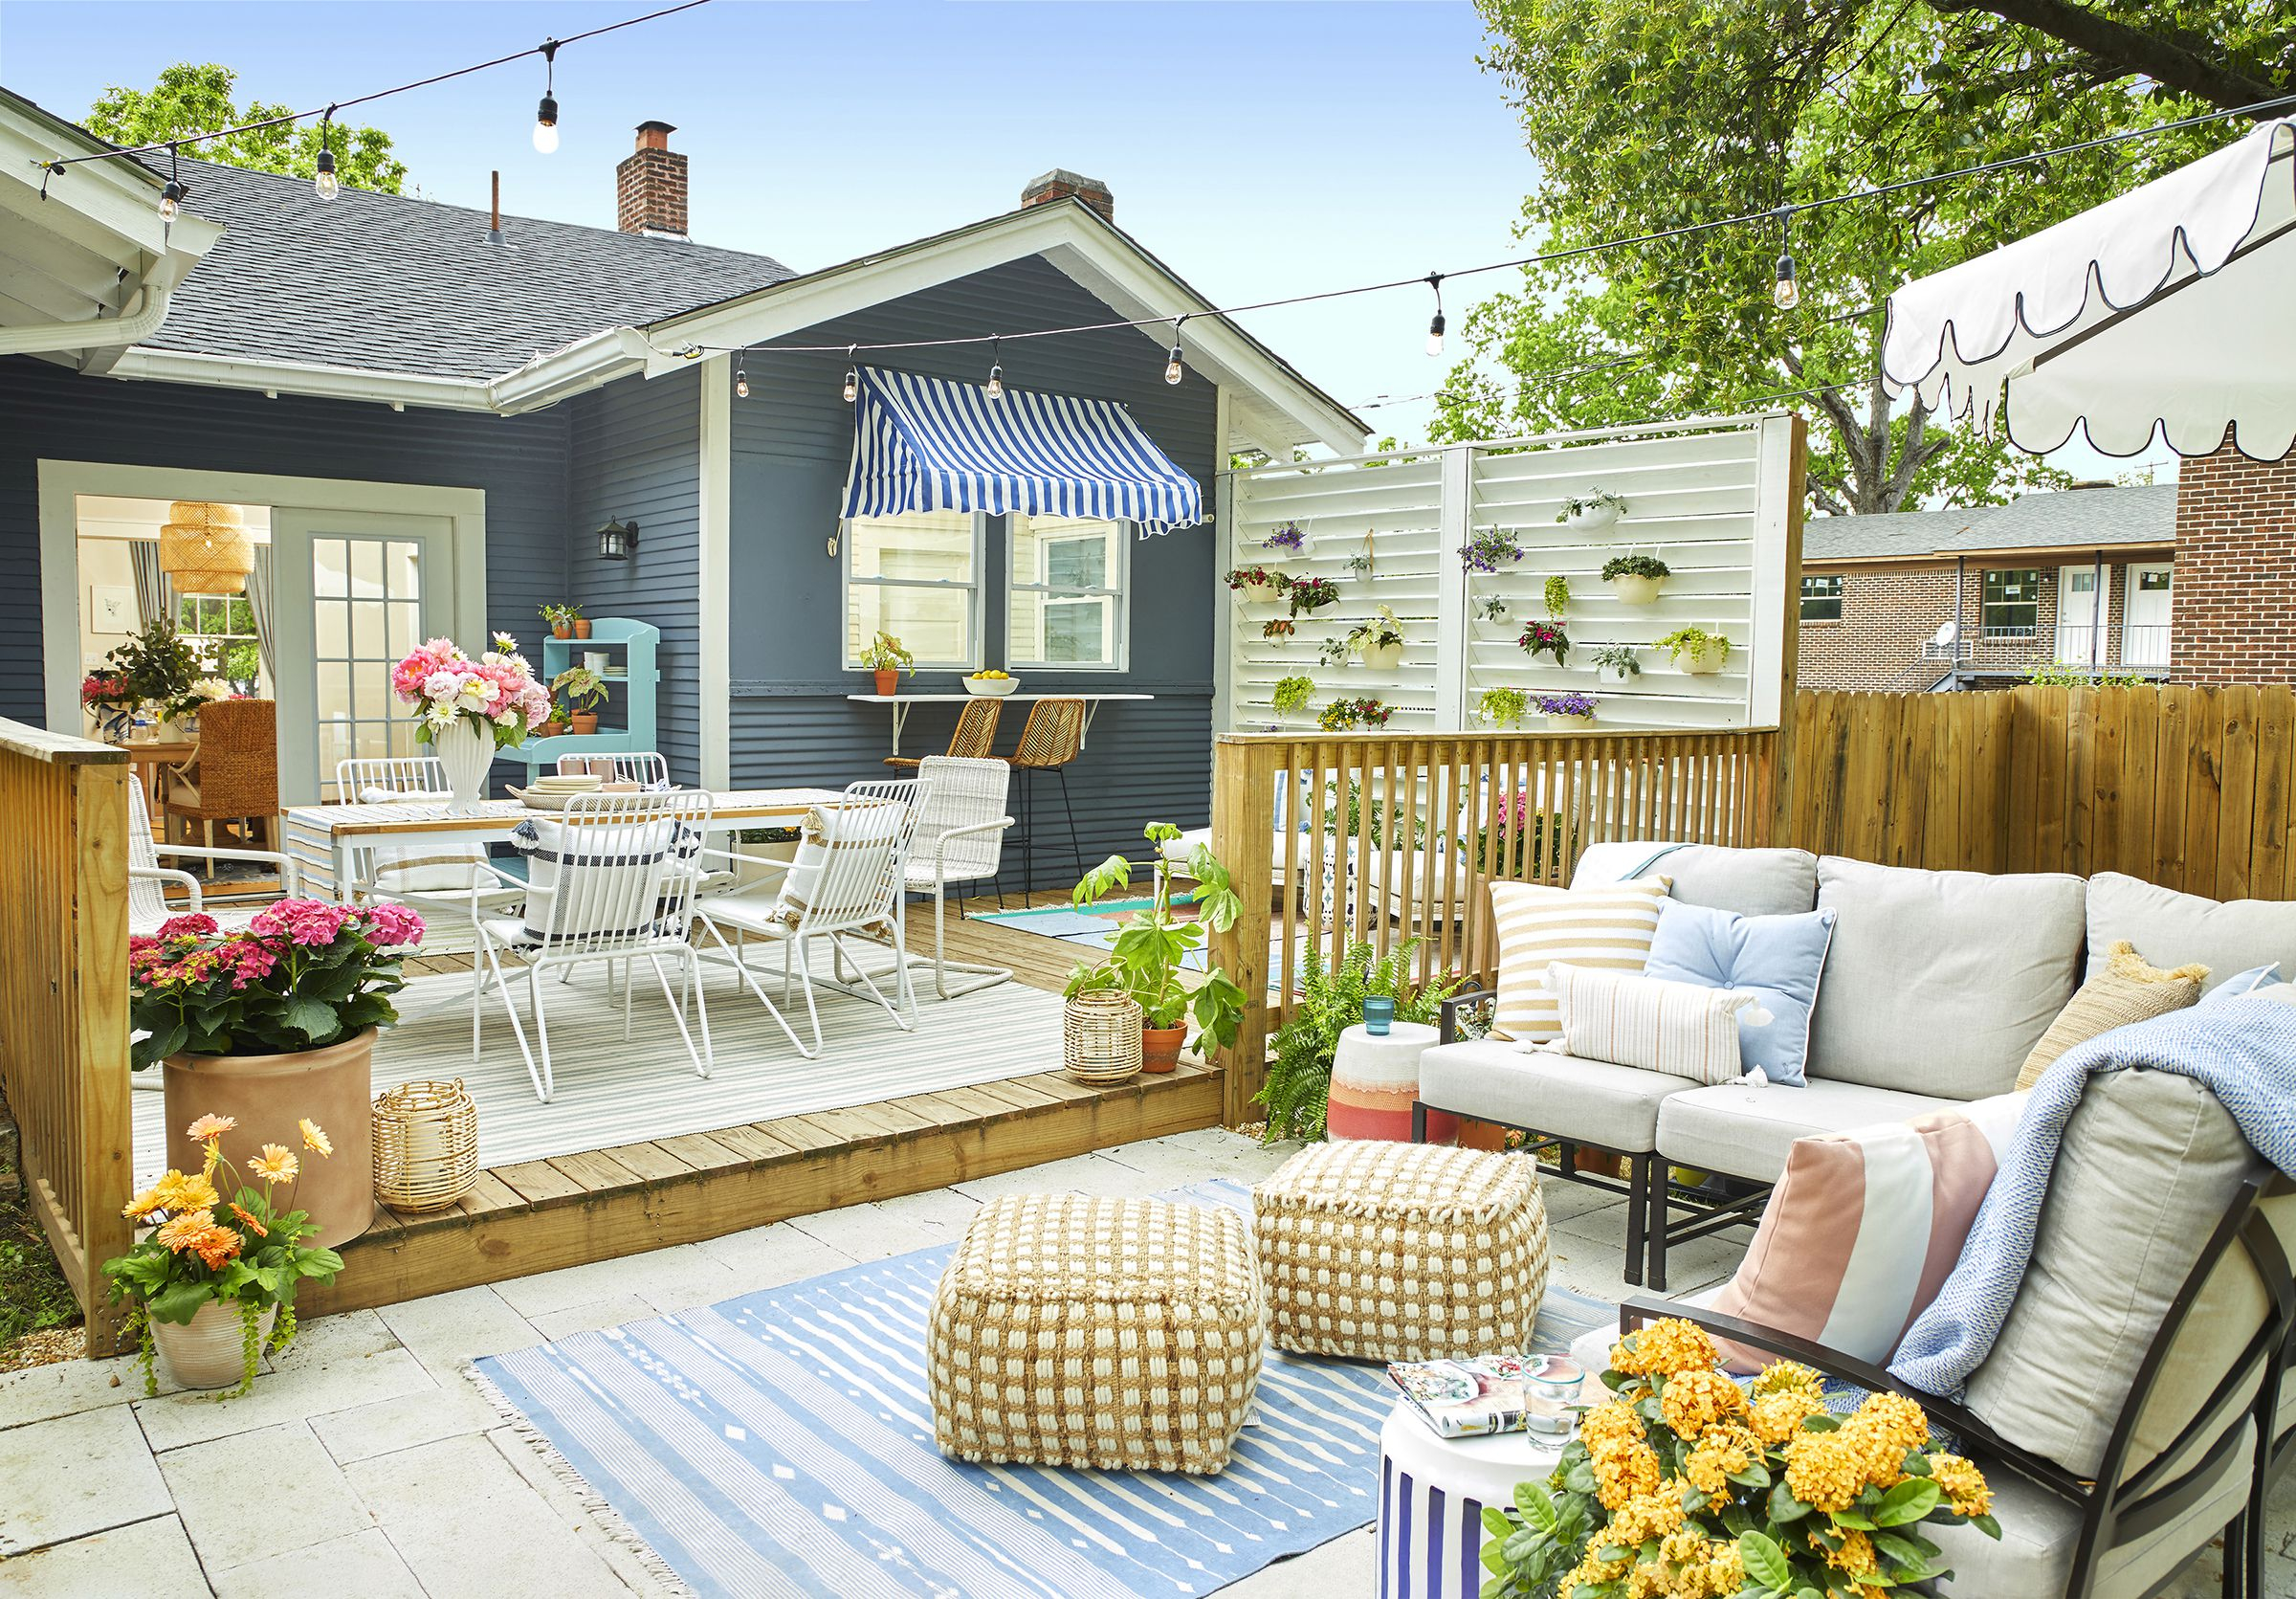 35 Best Patio And Porch Design Ideas Decorating Your Outdoor Space pertaining to 11 Smart Ideas How to Upgrade Home Backyard Ideas